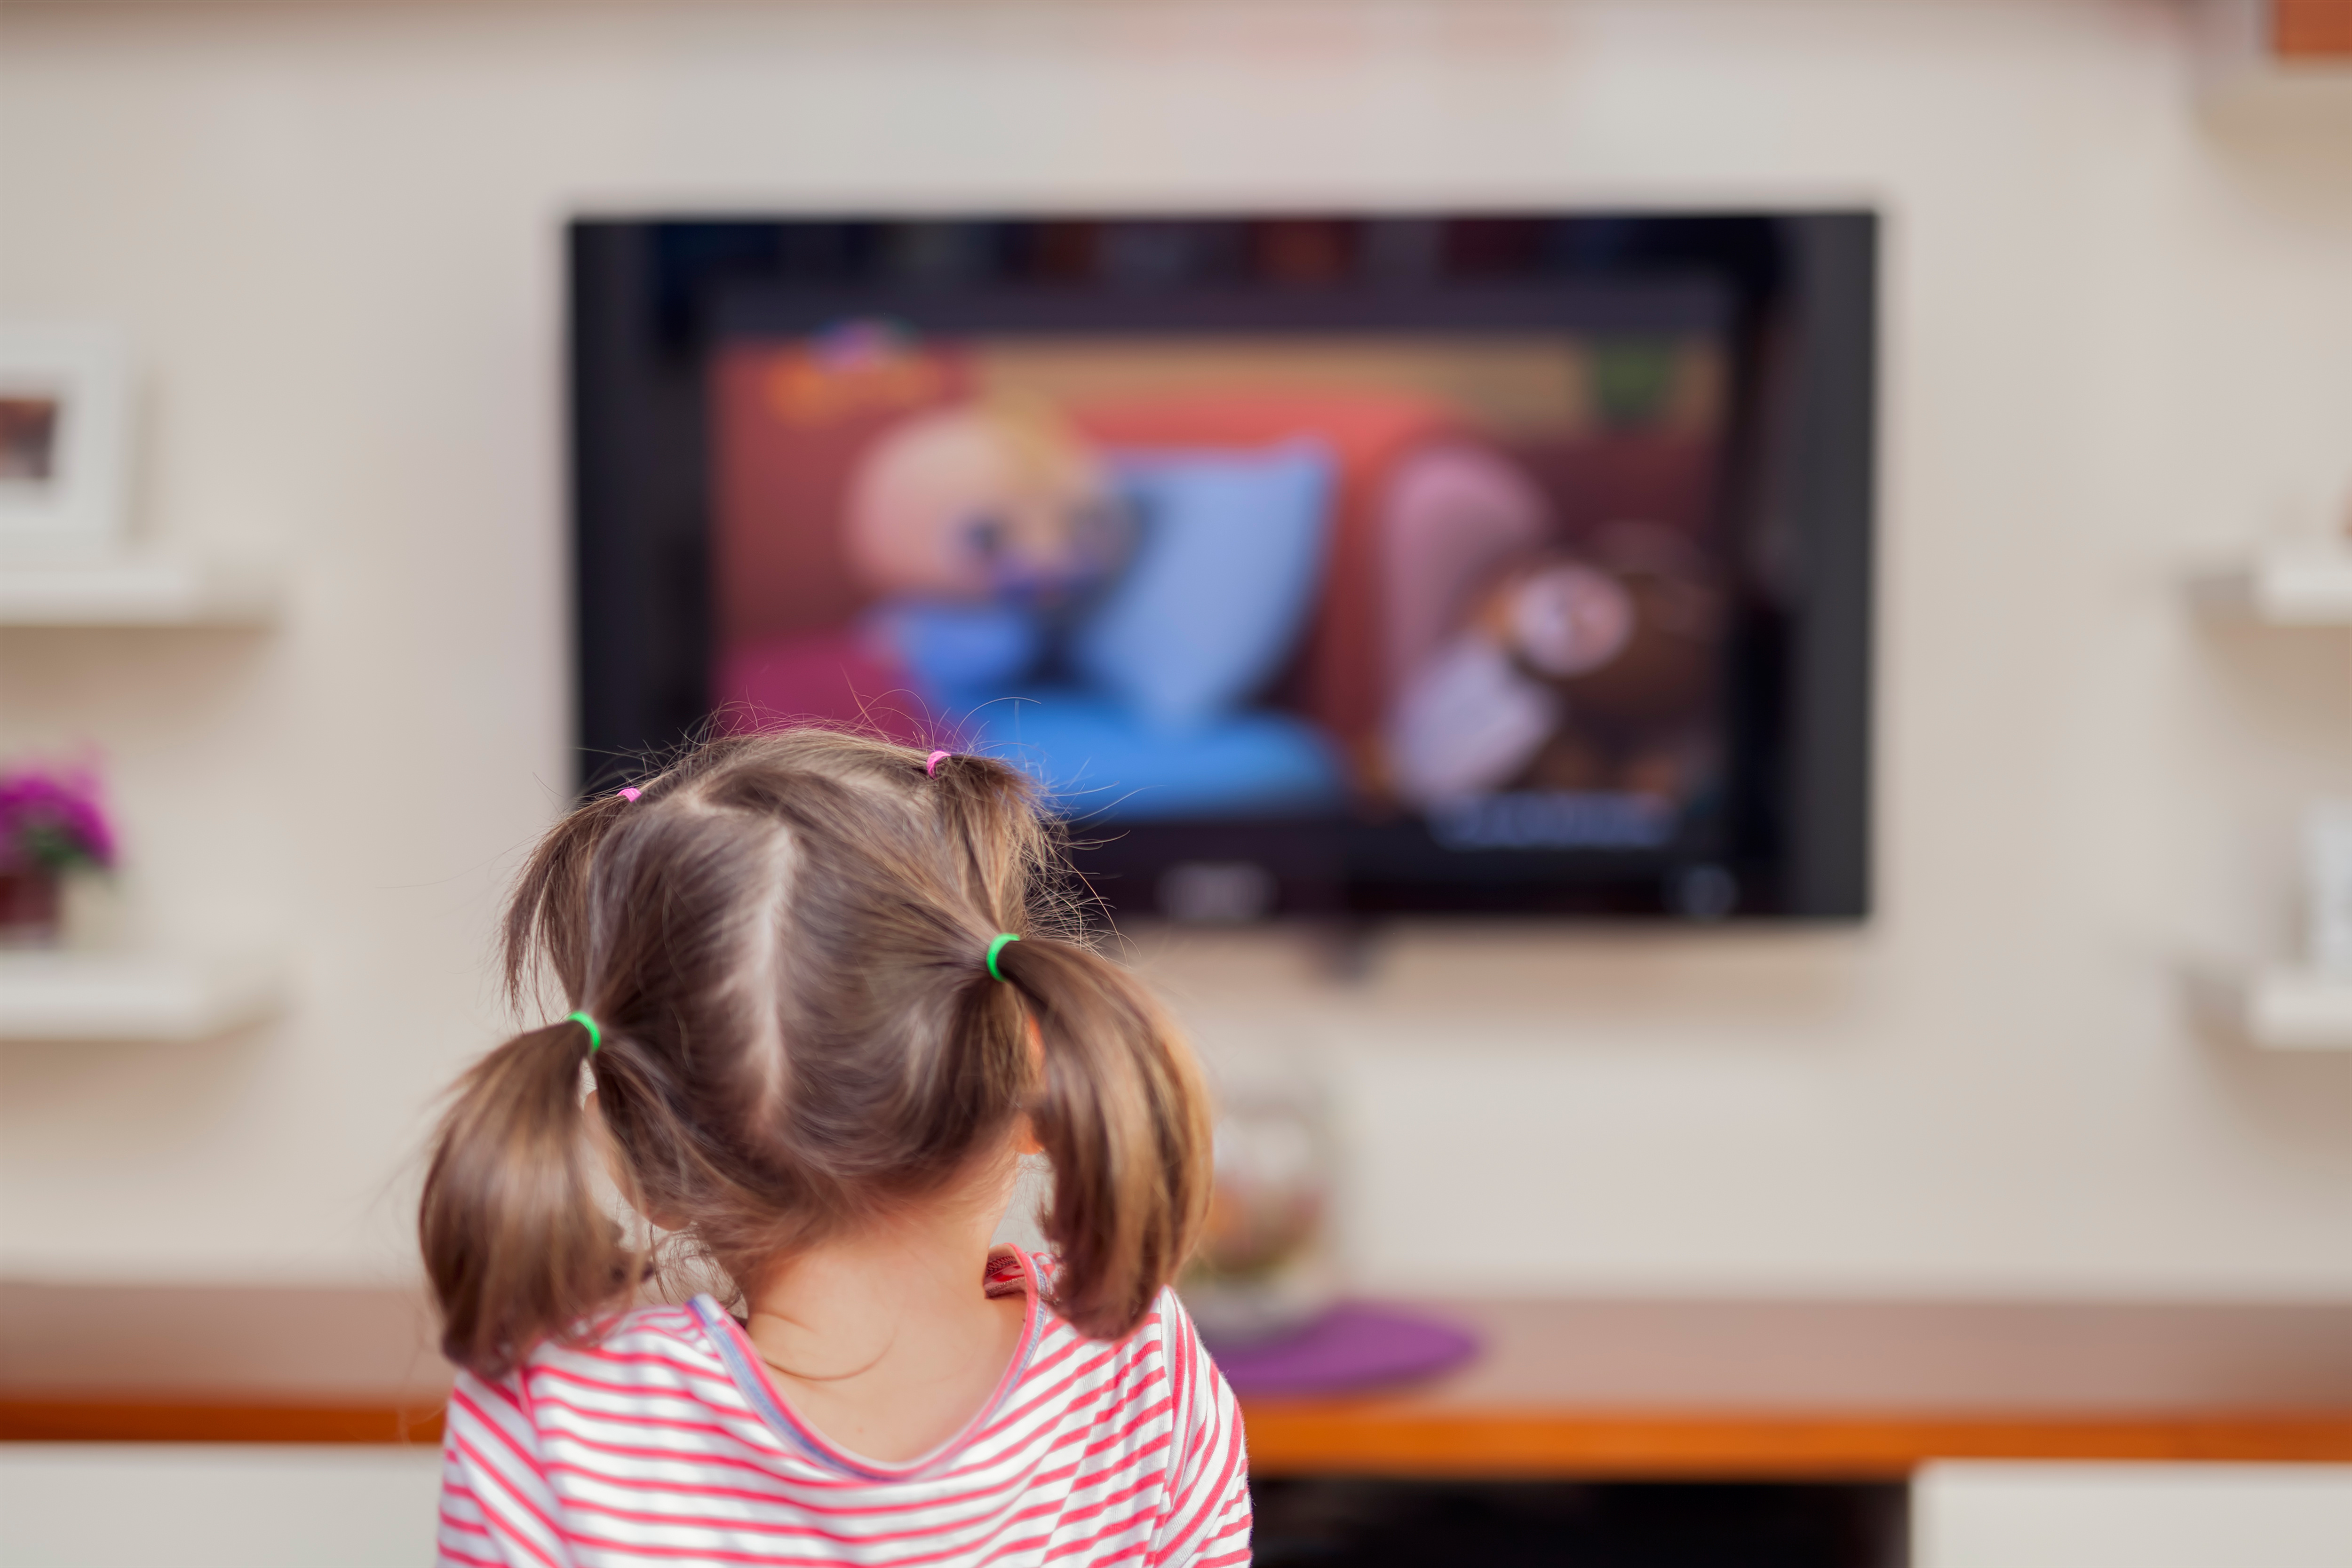 Eco appliances: energy-saving hints for televisions